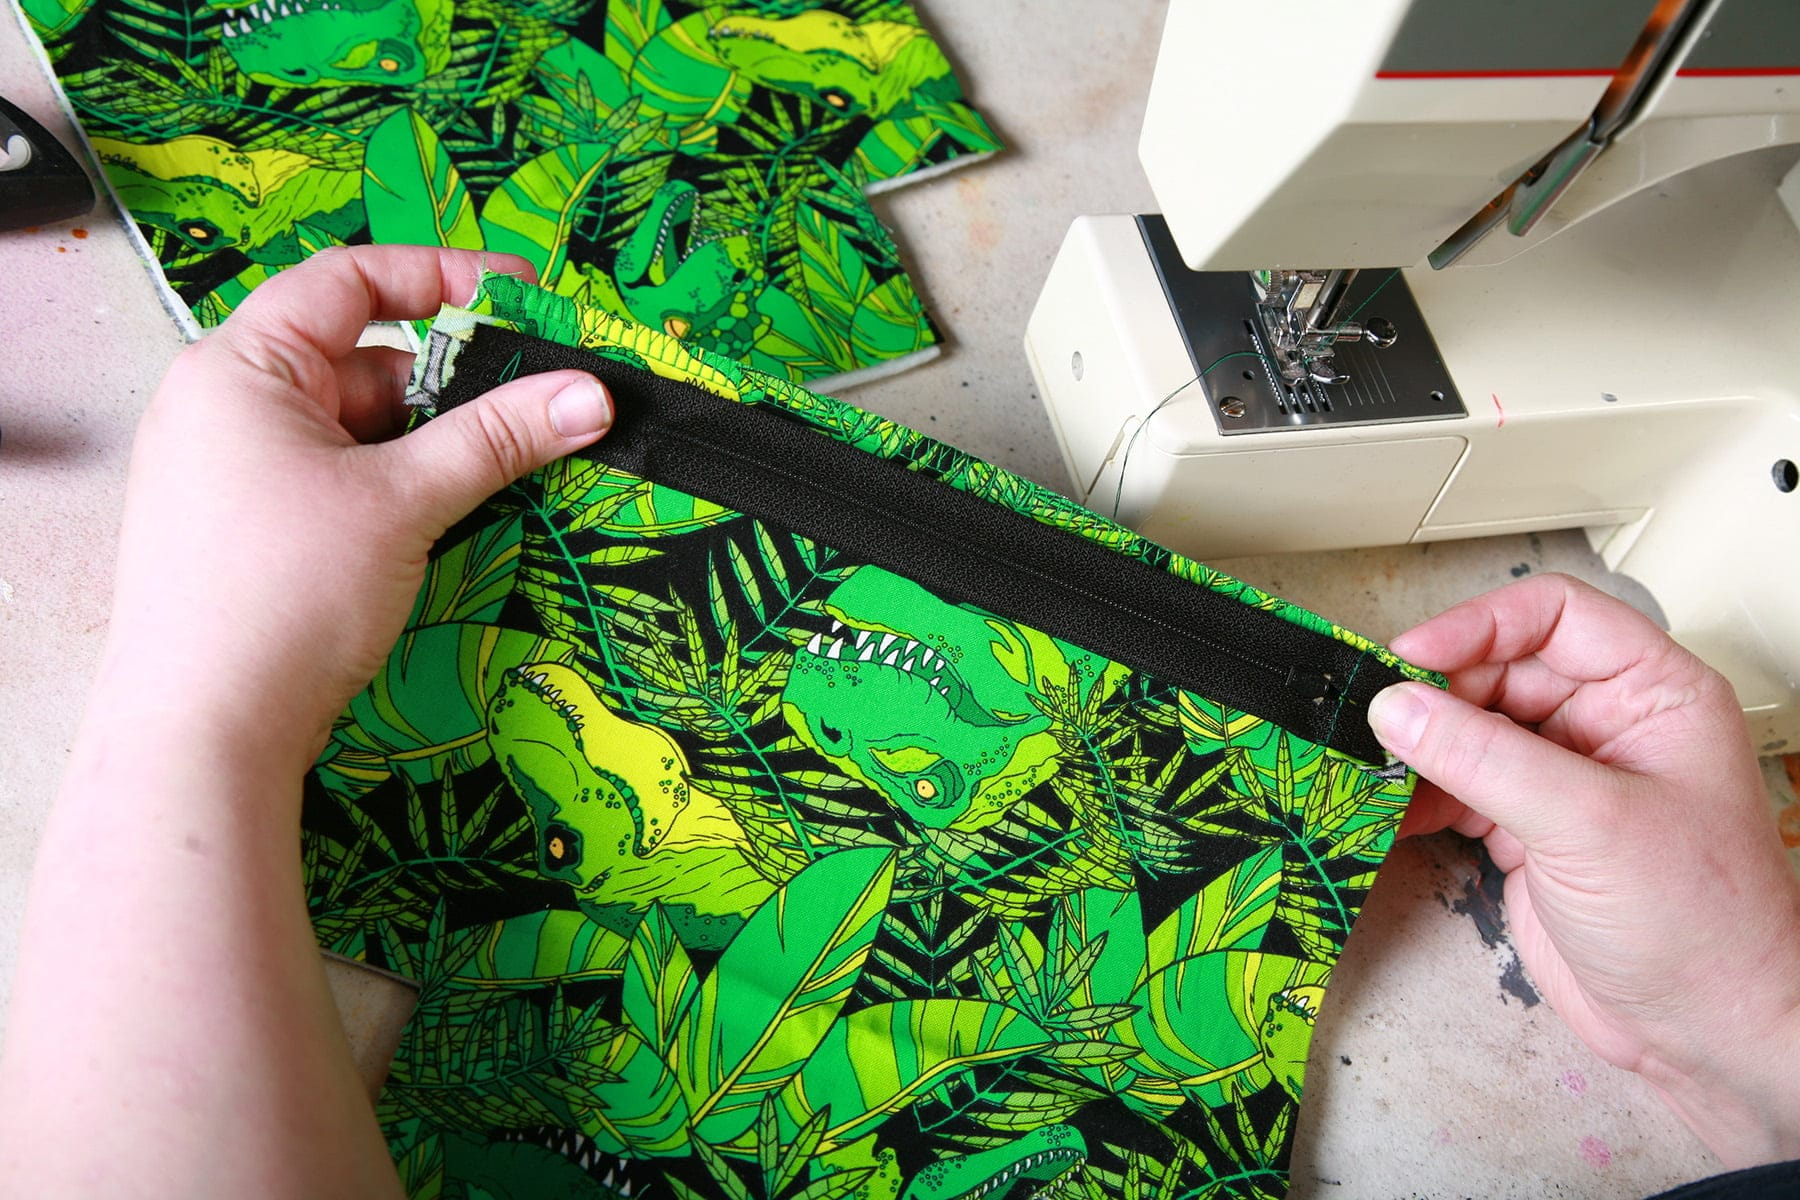 Two hands hold a black zipper against a piece of green dinosaur print fabric.